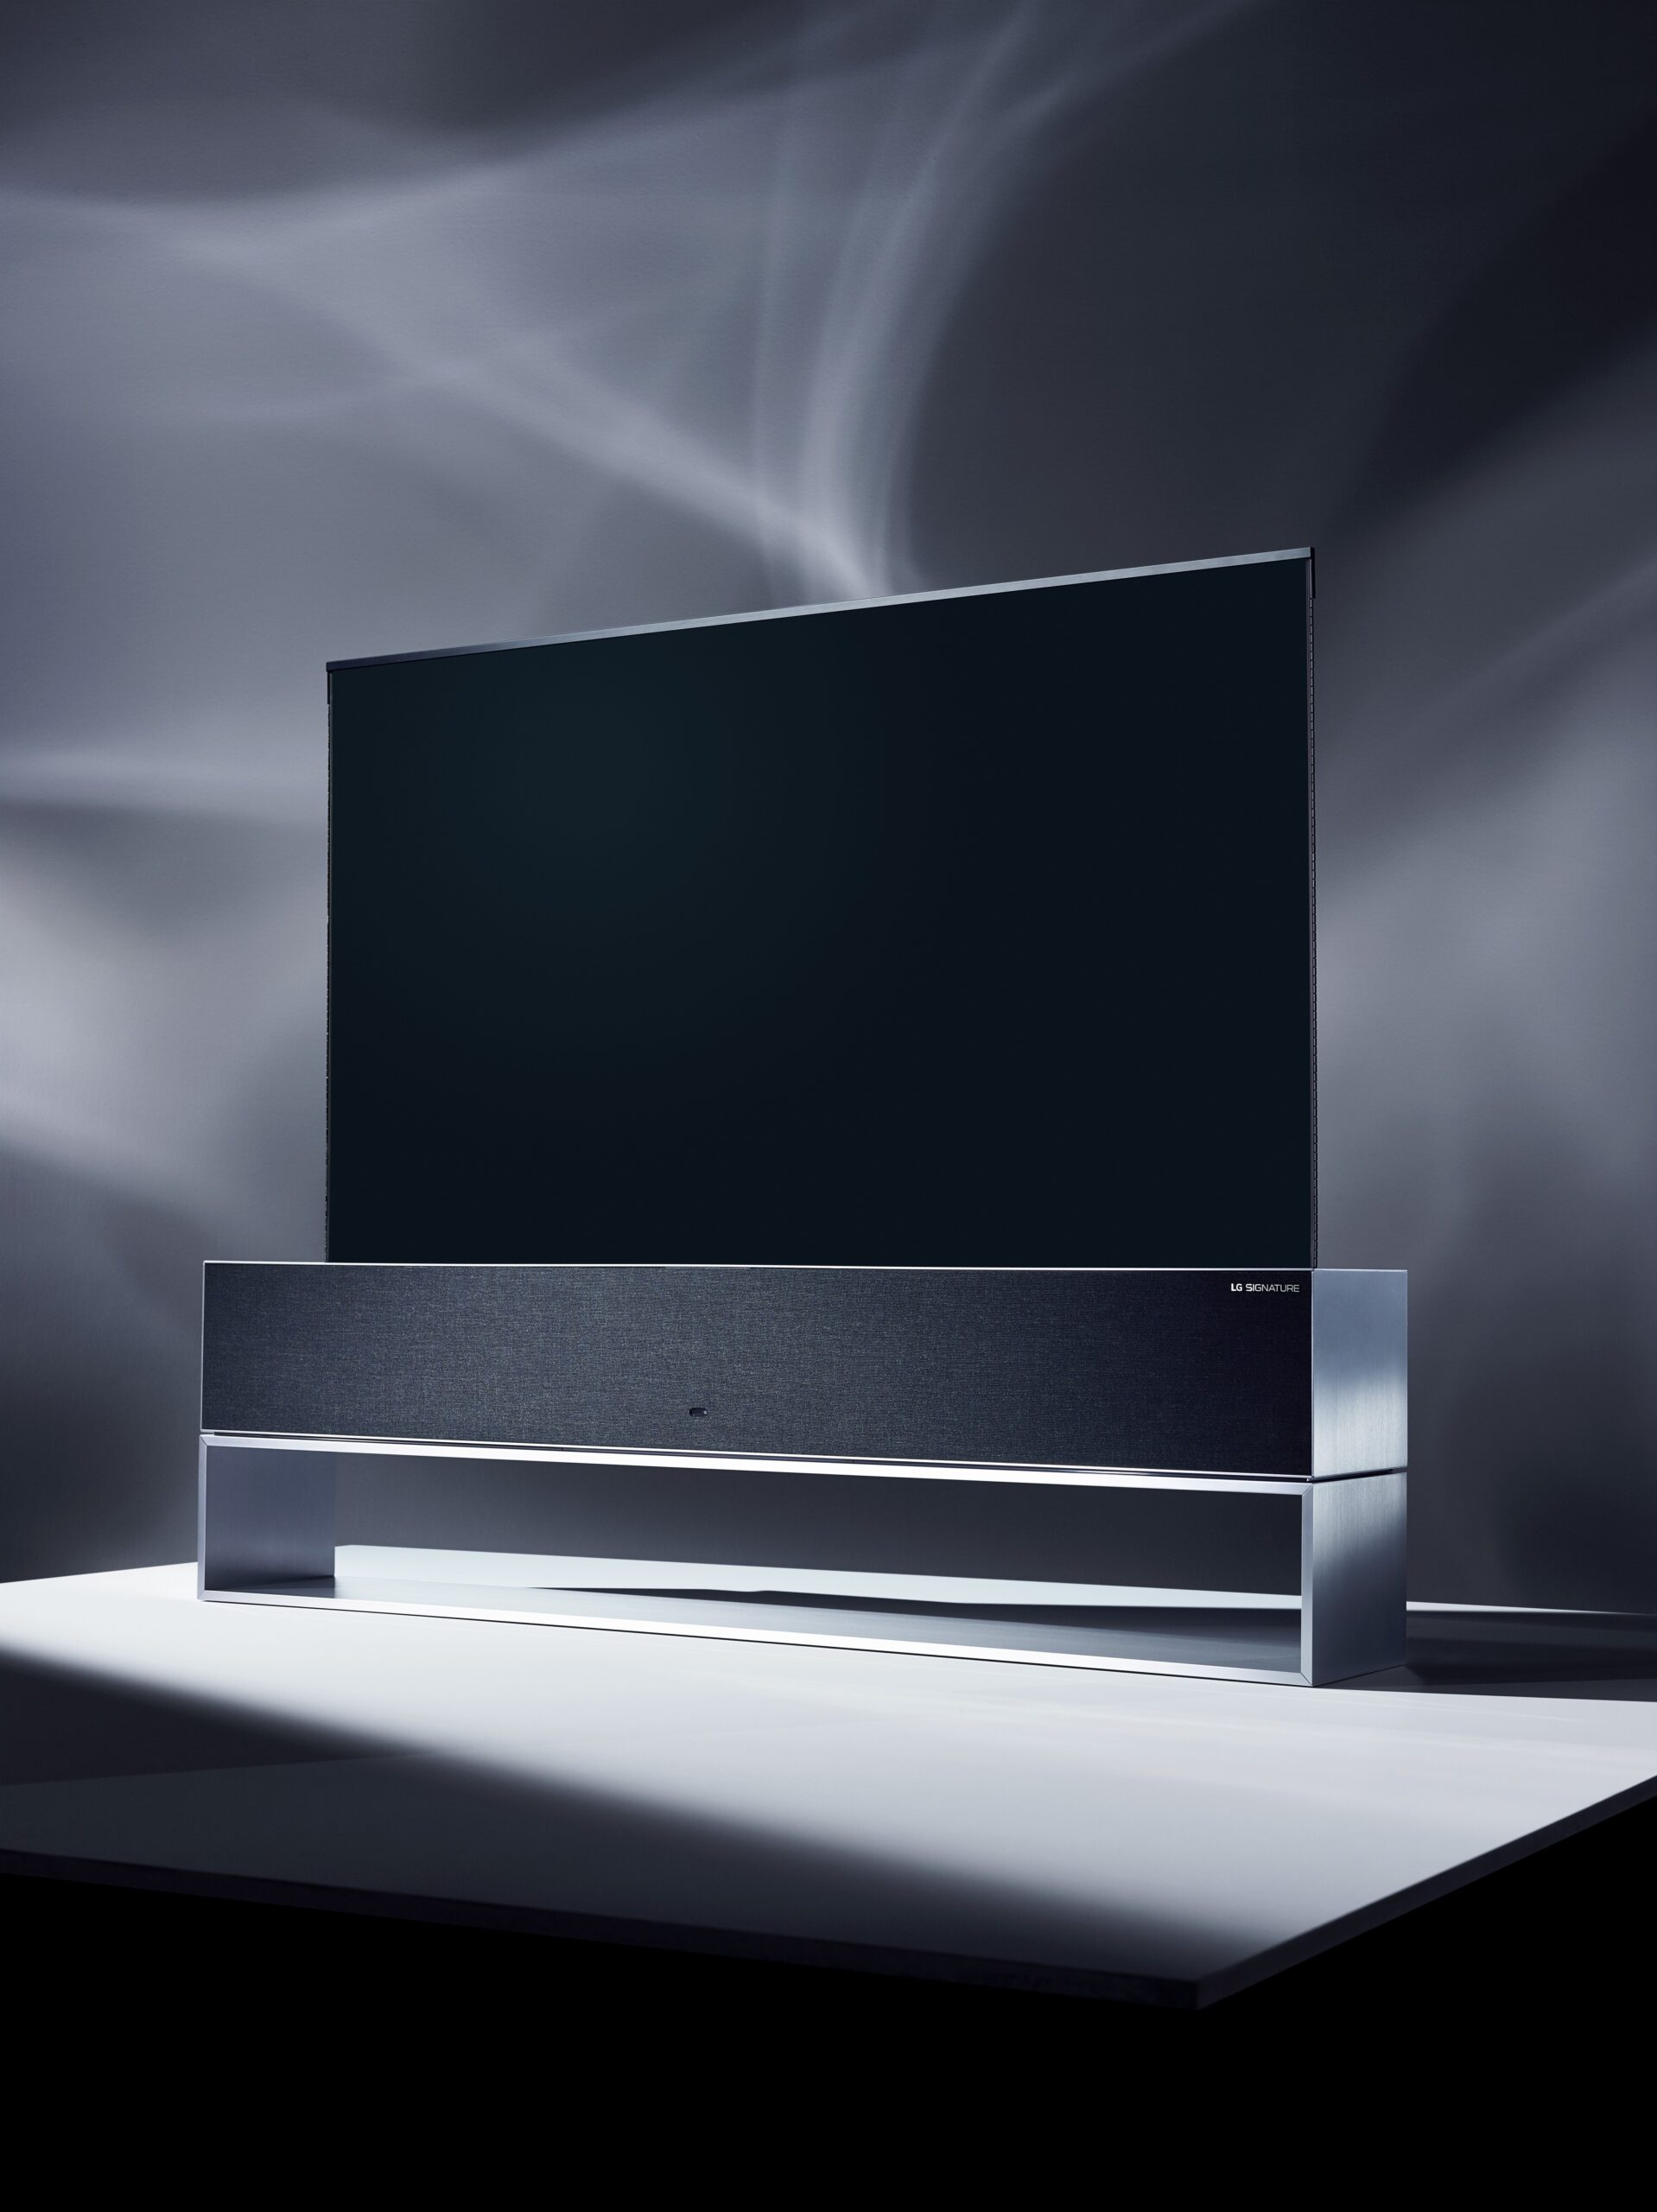 Concept image of the front LG SIGNATURE OLED TV R facing 10 degrees to the left at a darkened studio